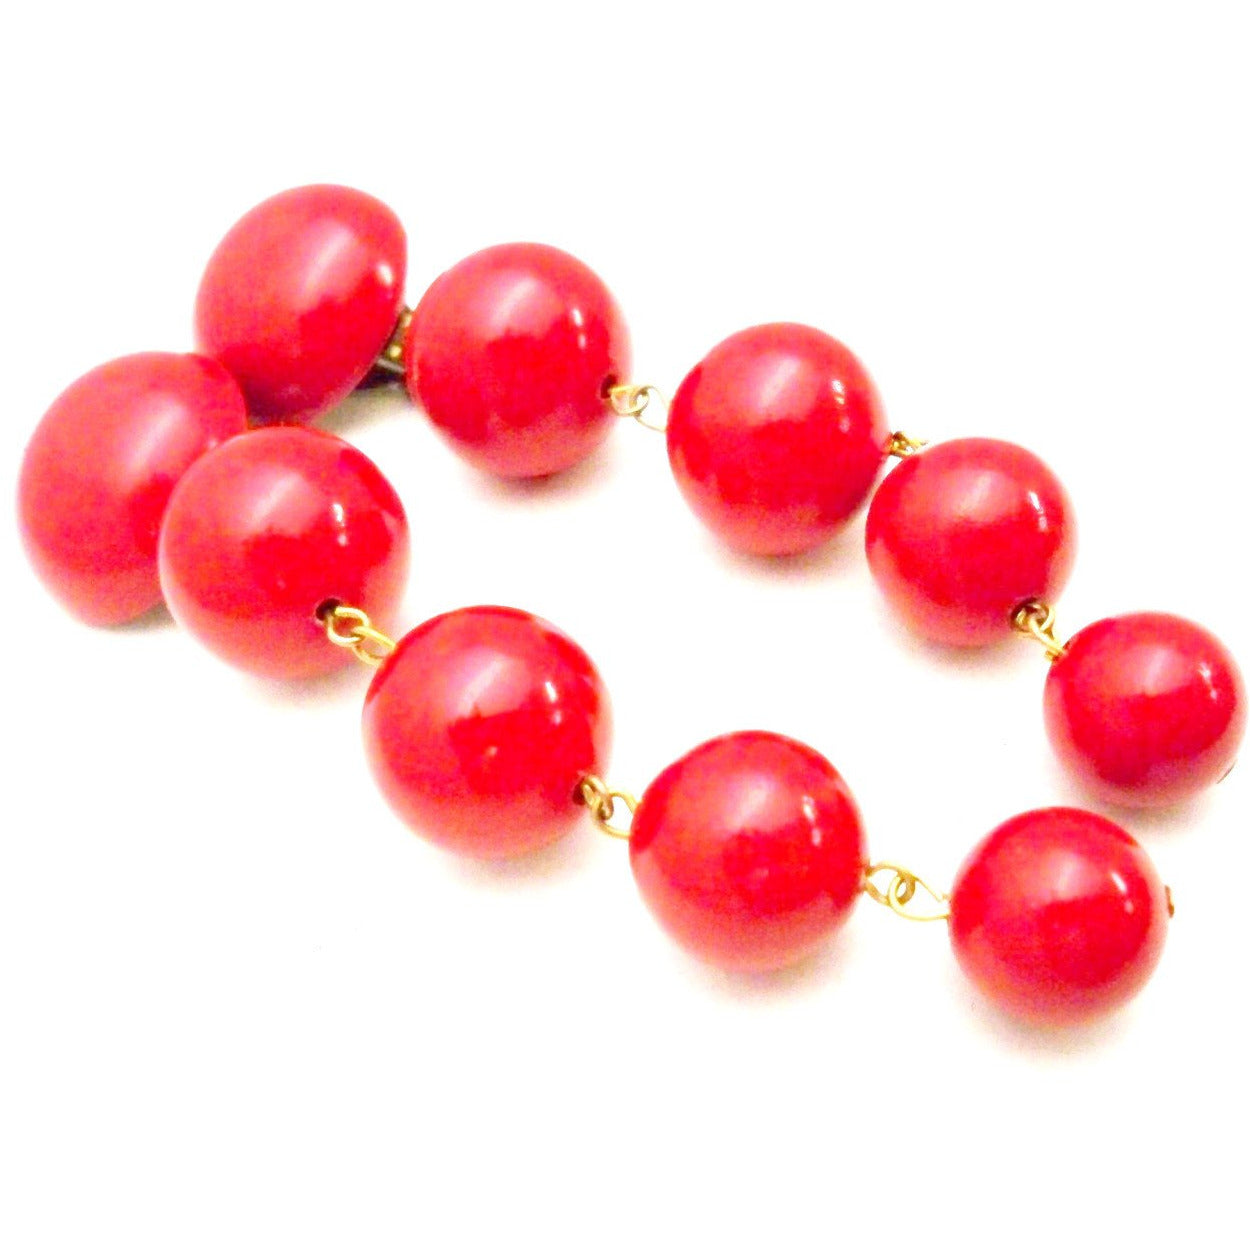 Vintage Cherry Gum Ball Drop Earrings CLip Style 1980s - The Best Vintage Clothing